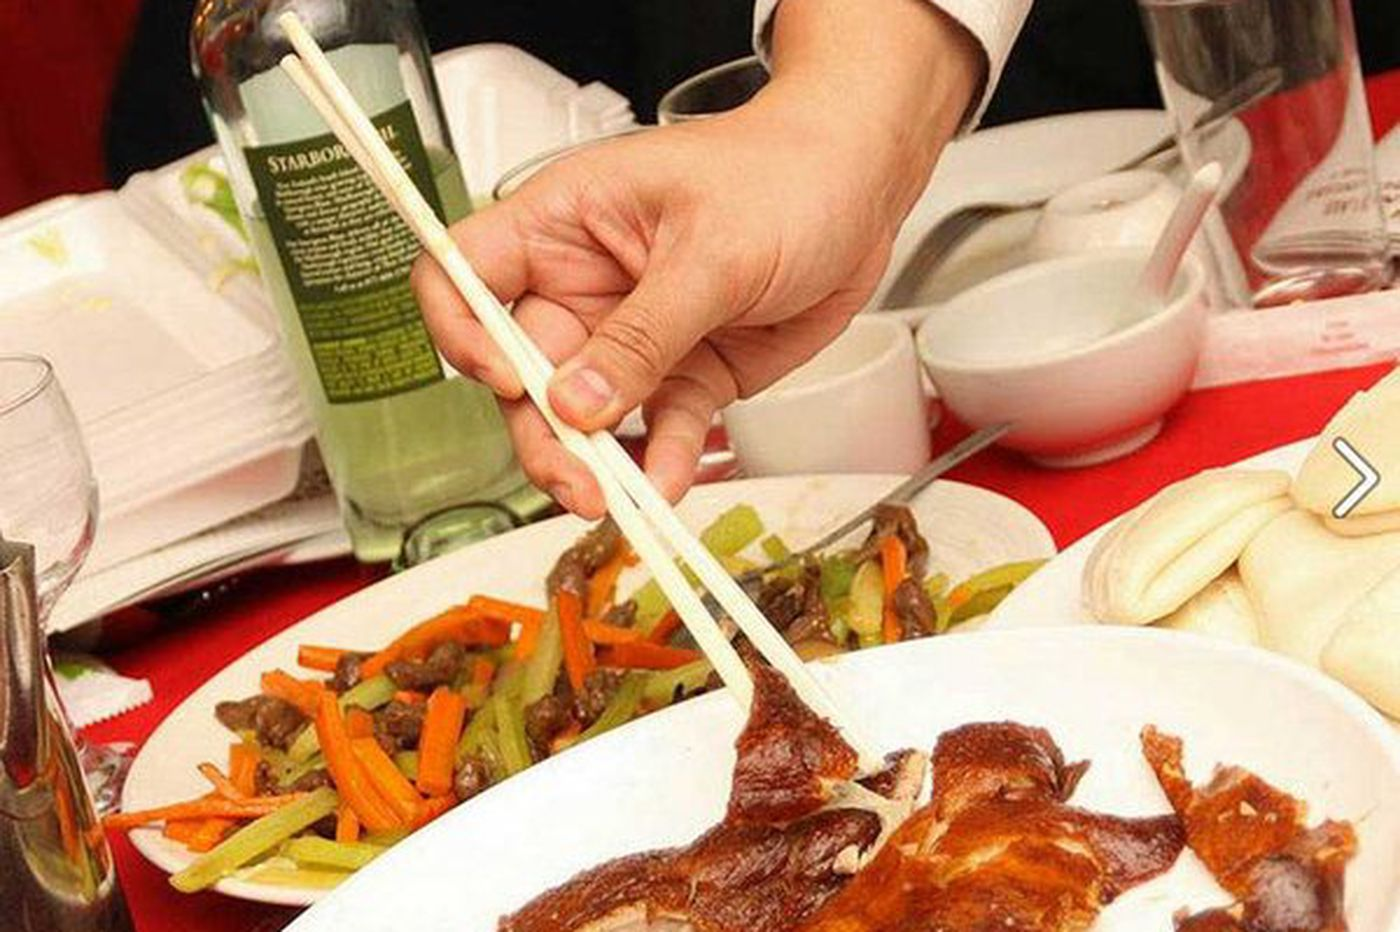 City sues Chinatown eatery where lawyers were sickened